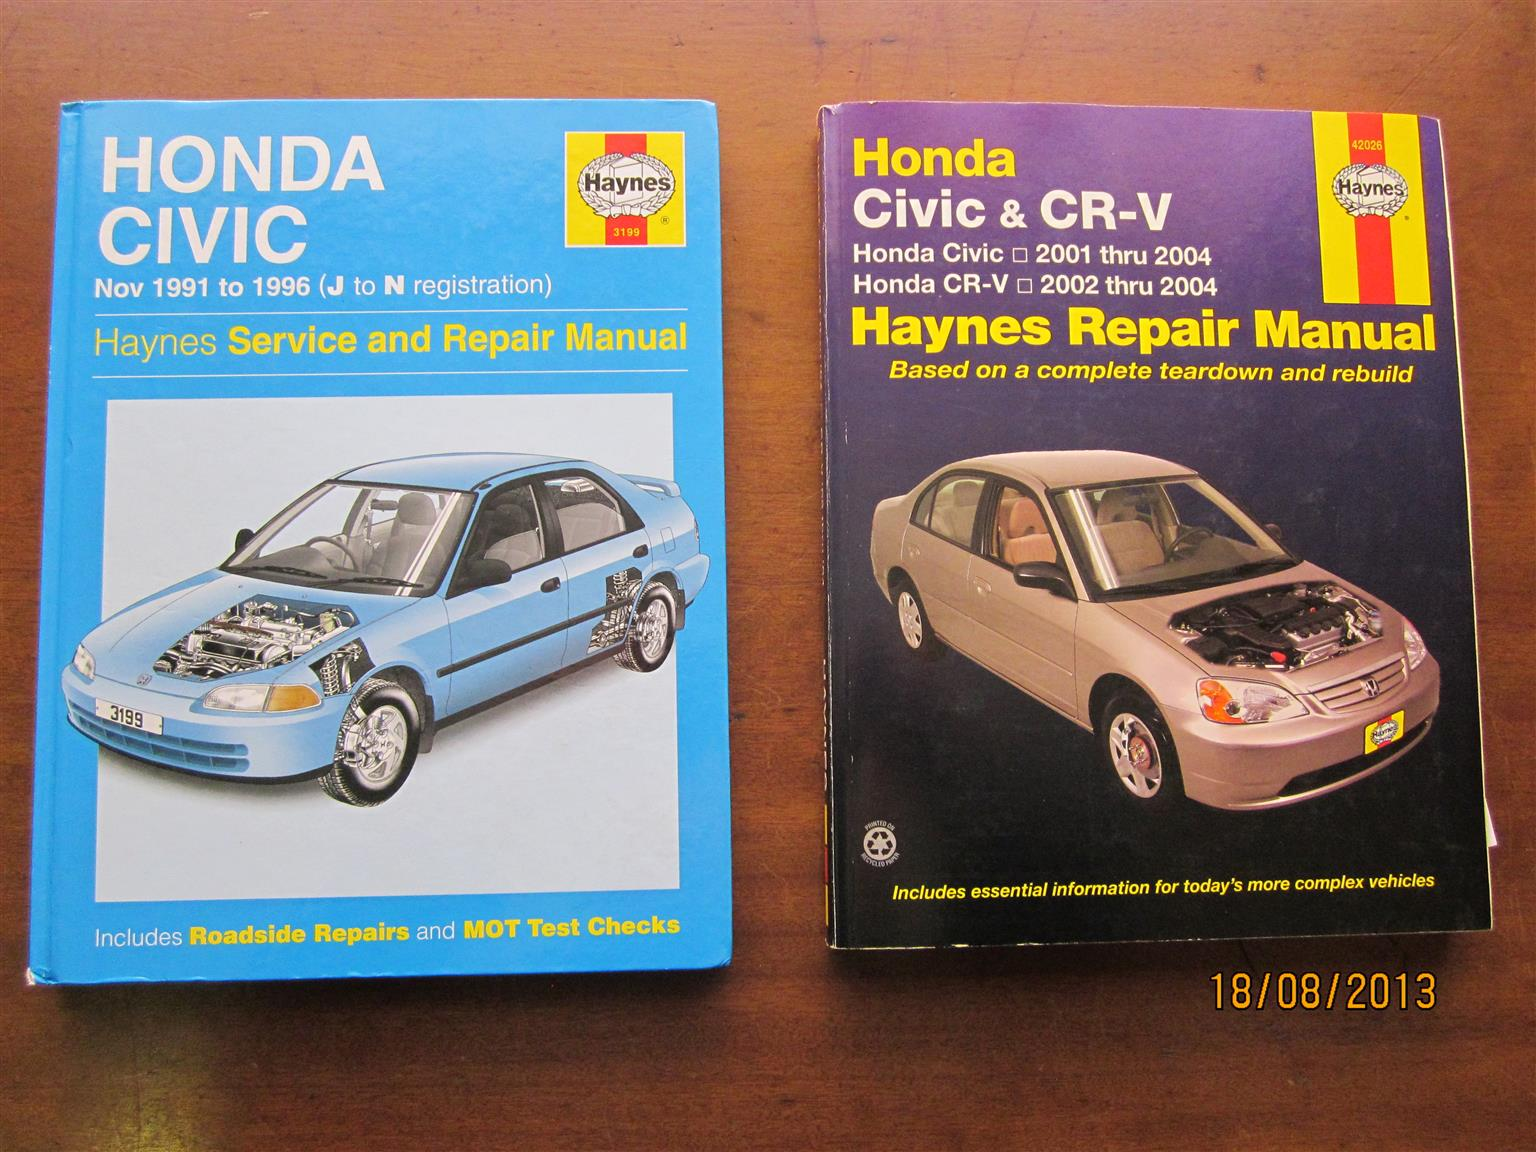 Motorcar Manuals Honda Civic